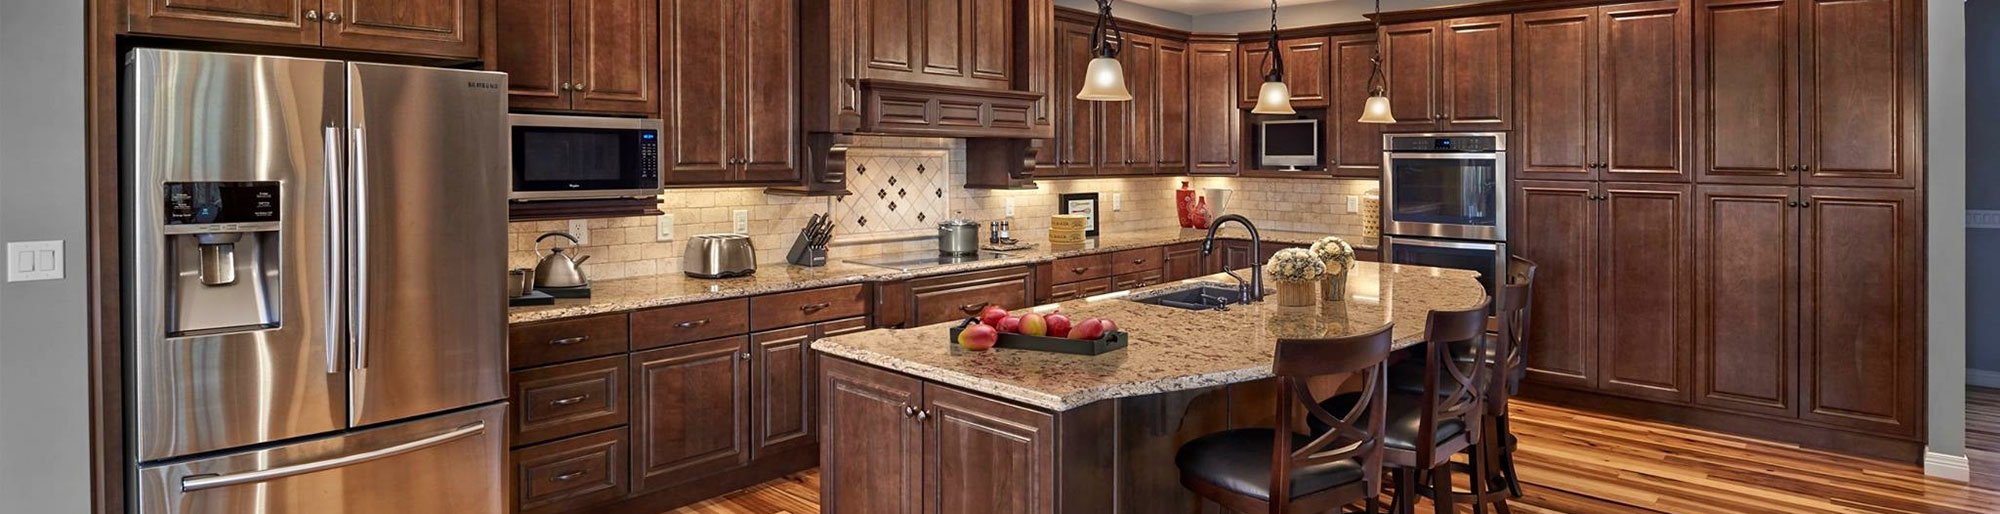 quartz viatera lovely with classic cabinets hello studio tile kitchen in upper white pictures to fixer shaker how for countertops countertop right subway marble minuet choose the choosing